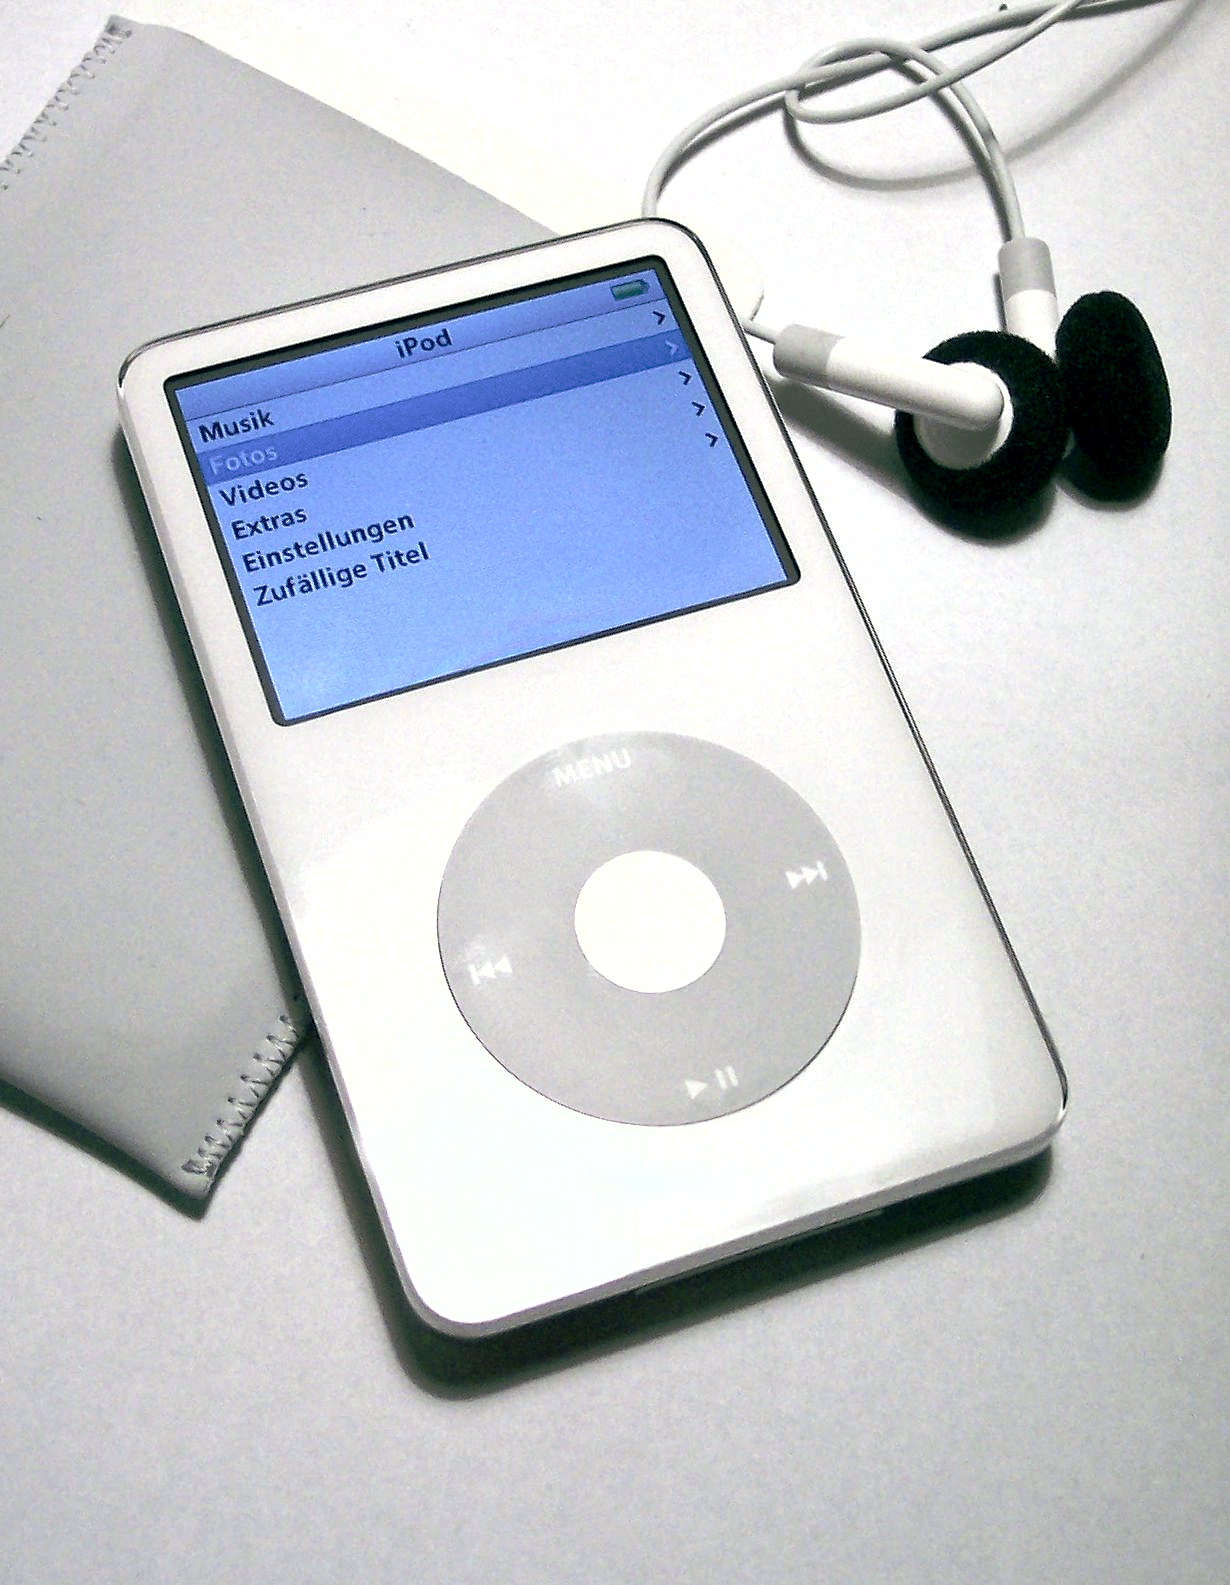 Apple IPod Der Meistverkaufte MP3 Player